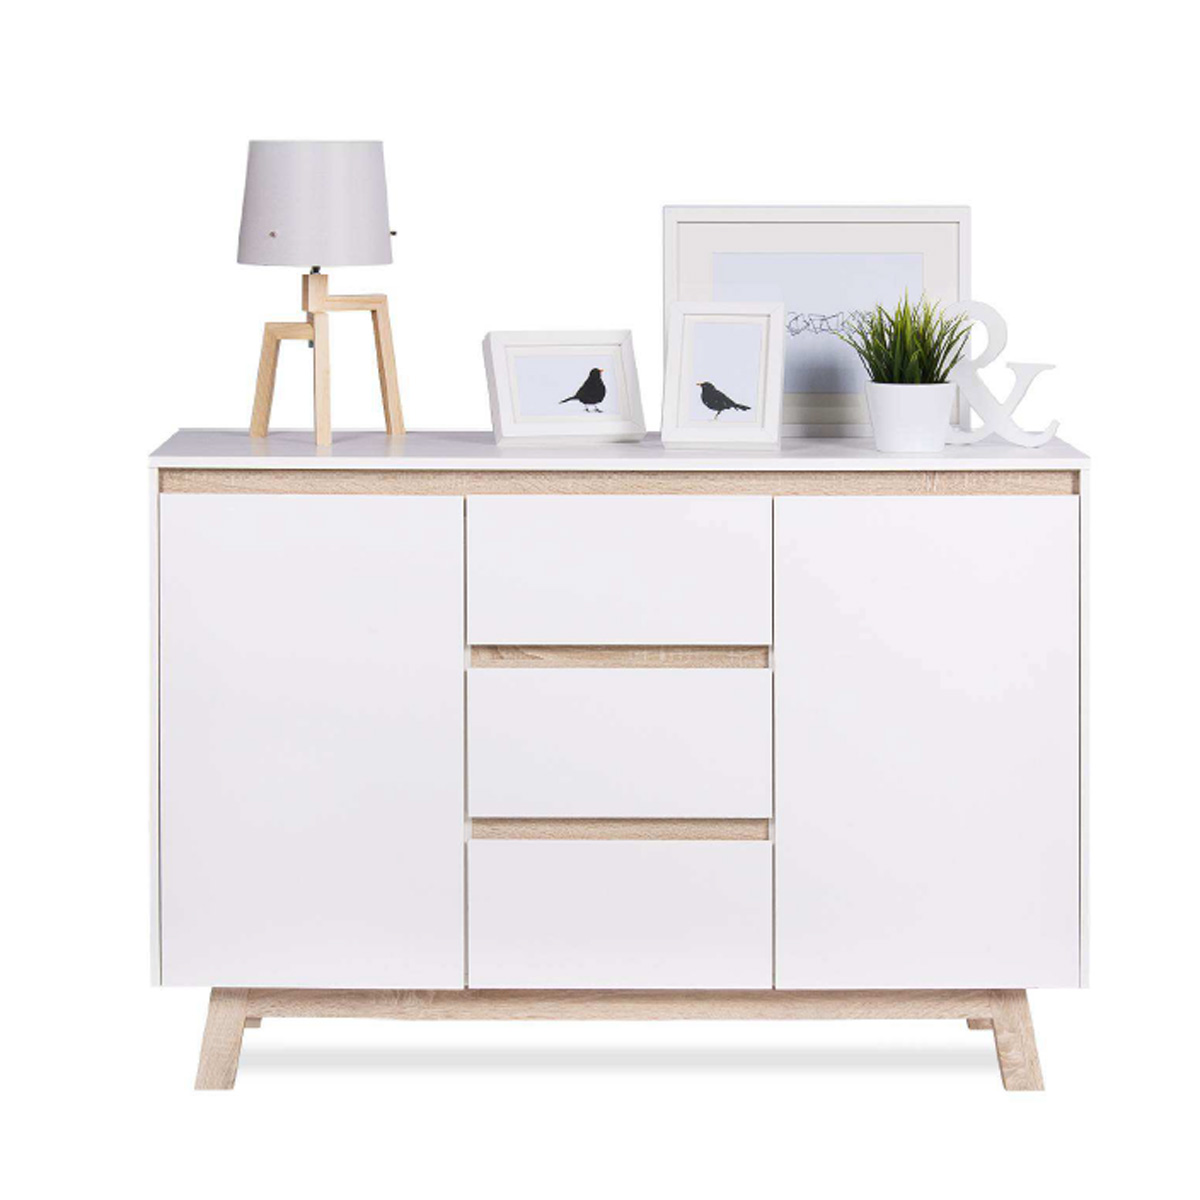 kommode apart 2 sideboard anrichte in wei und sonoma eiche breite 120 cm ebay. Black Bedroom Furniture Sets. Home Design Ideas